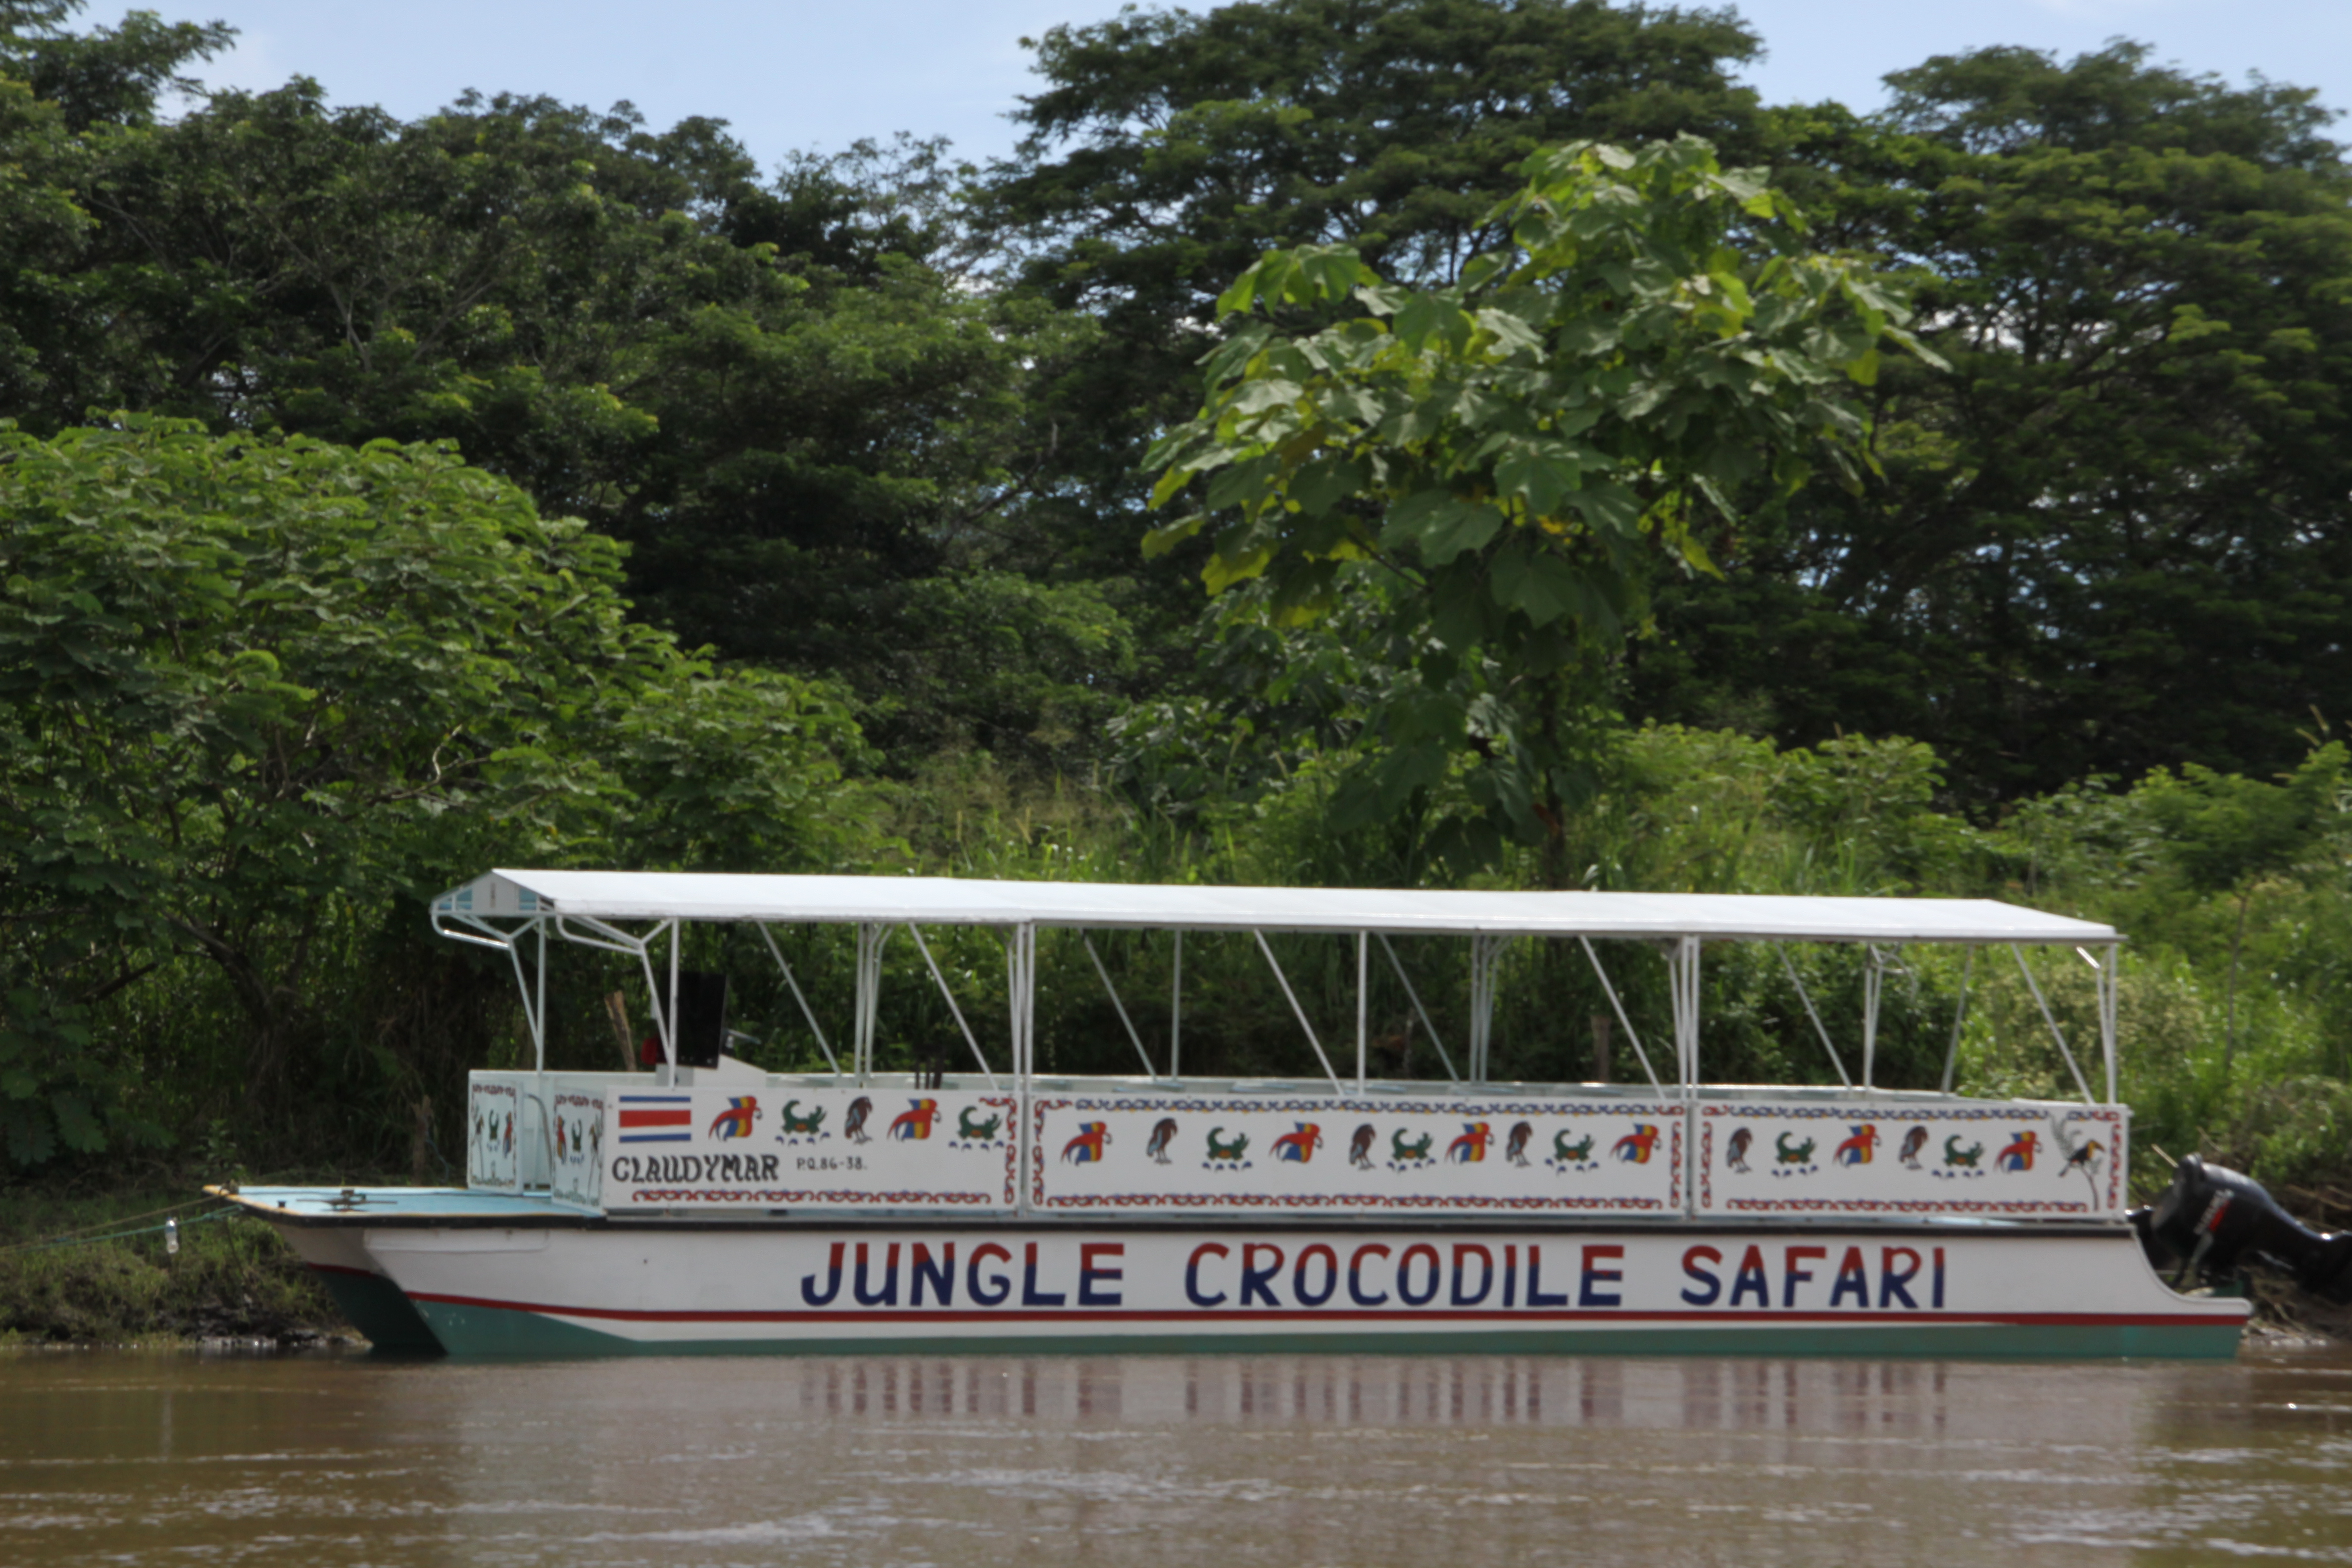 La barca Jungle Crocodile Safari